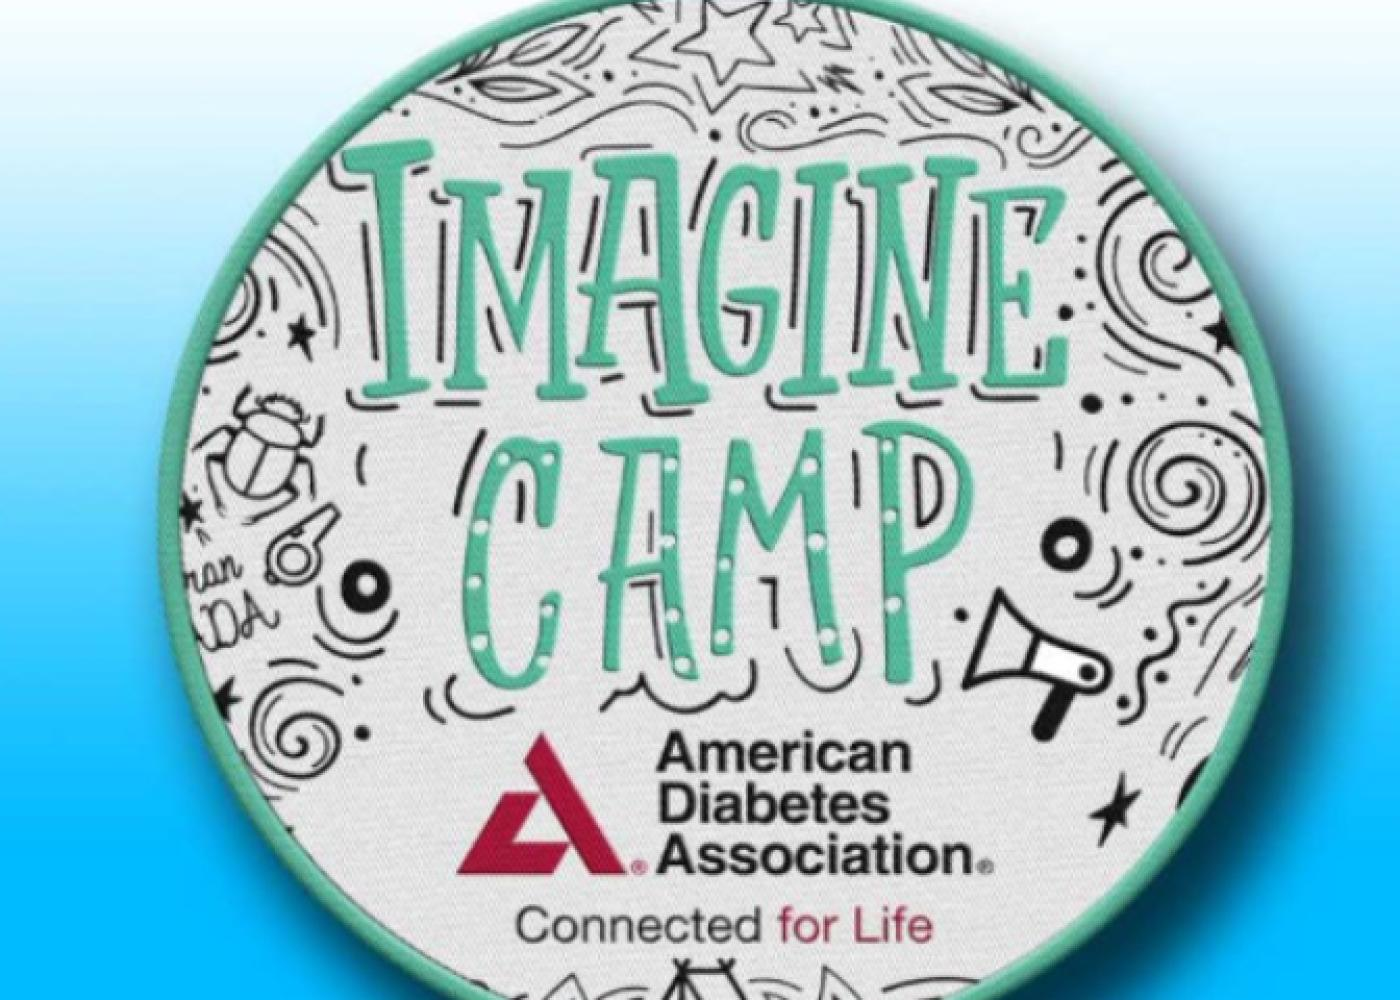 Coaster with Imagine Camp in green surrounded by black doodles